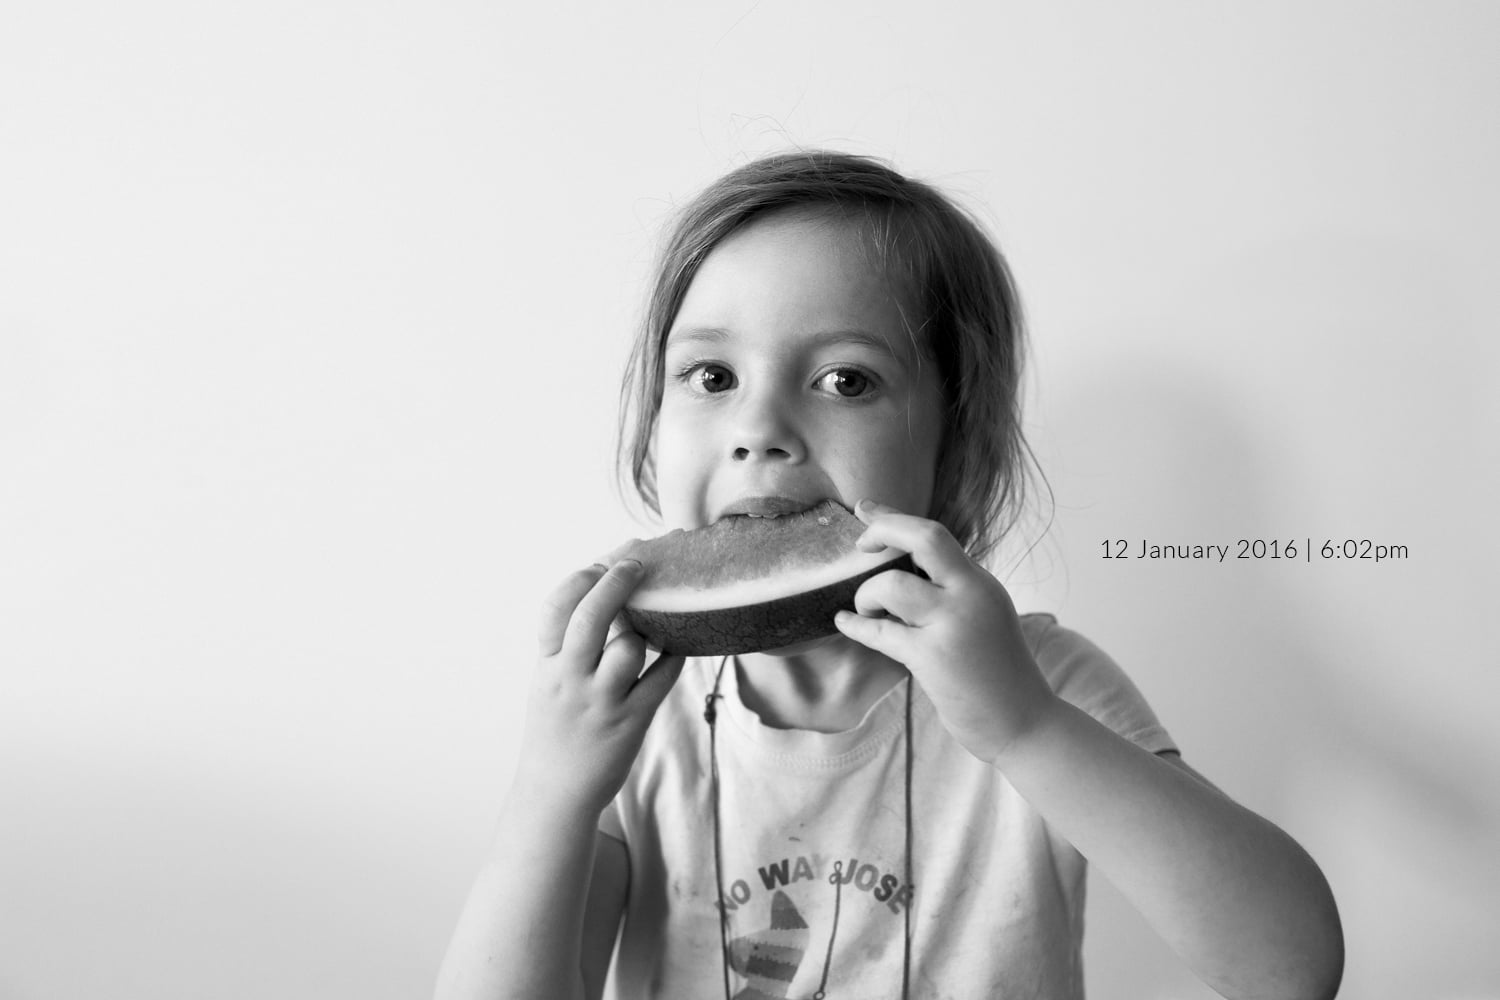 family-photography-photo-a-day-project-day-12.jpg